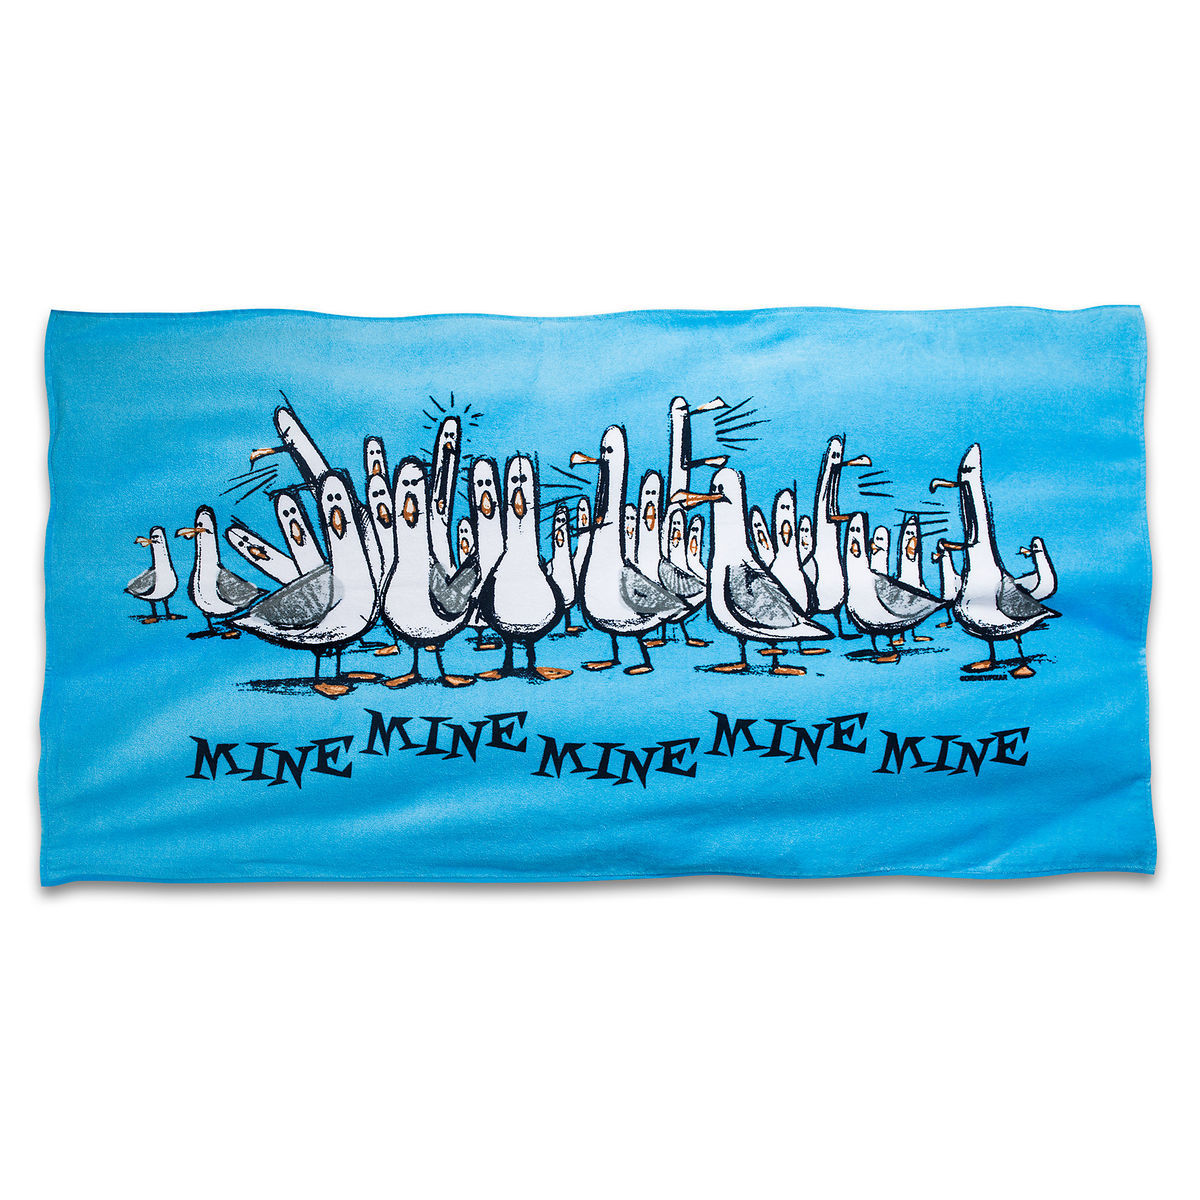 Product Image Of Finding Nemo Seagulls Beach Towel Mine